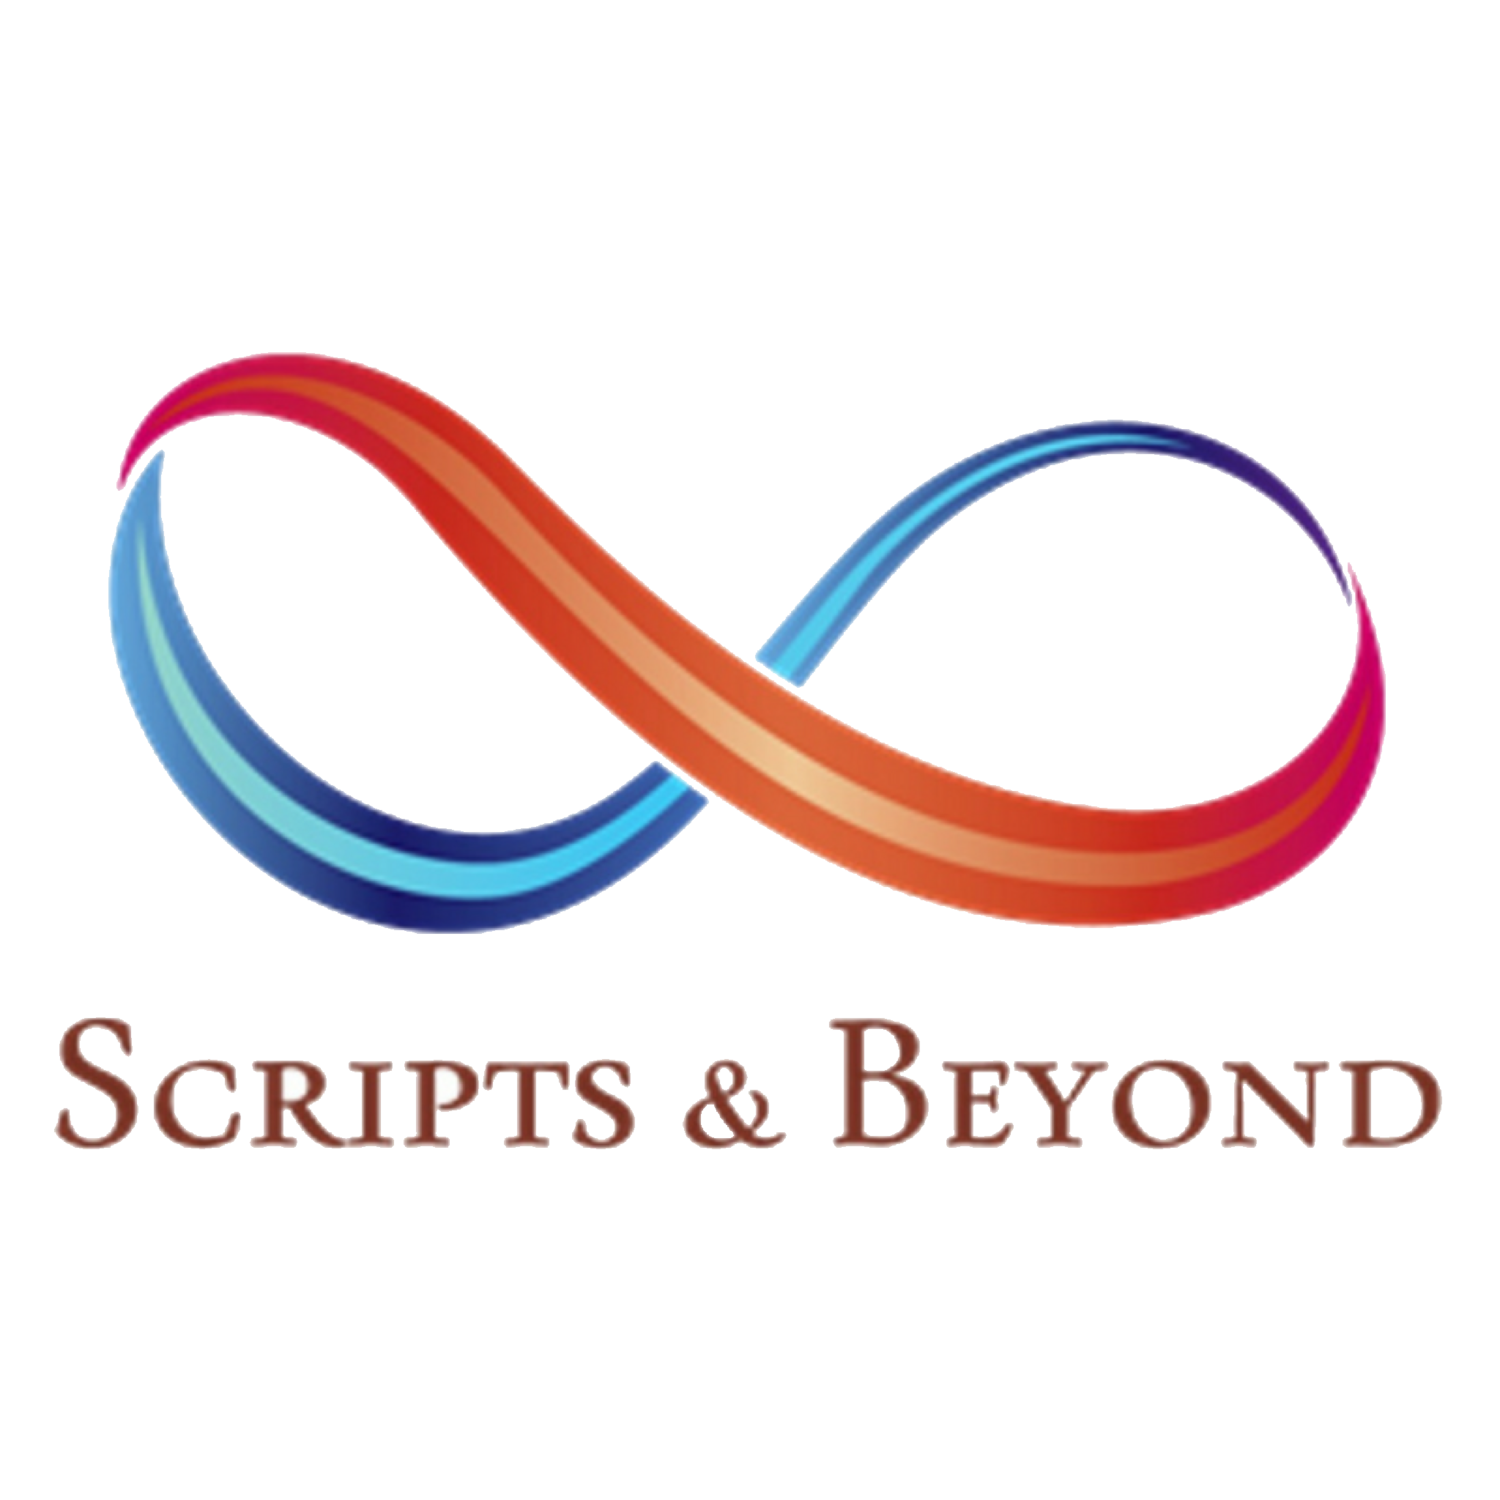 Scripts & Beyond - Medication Management